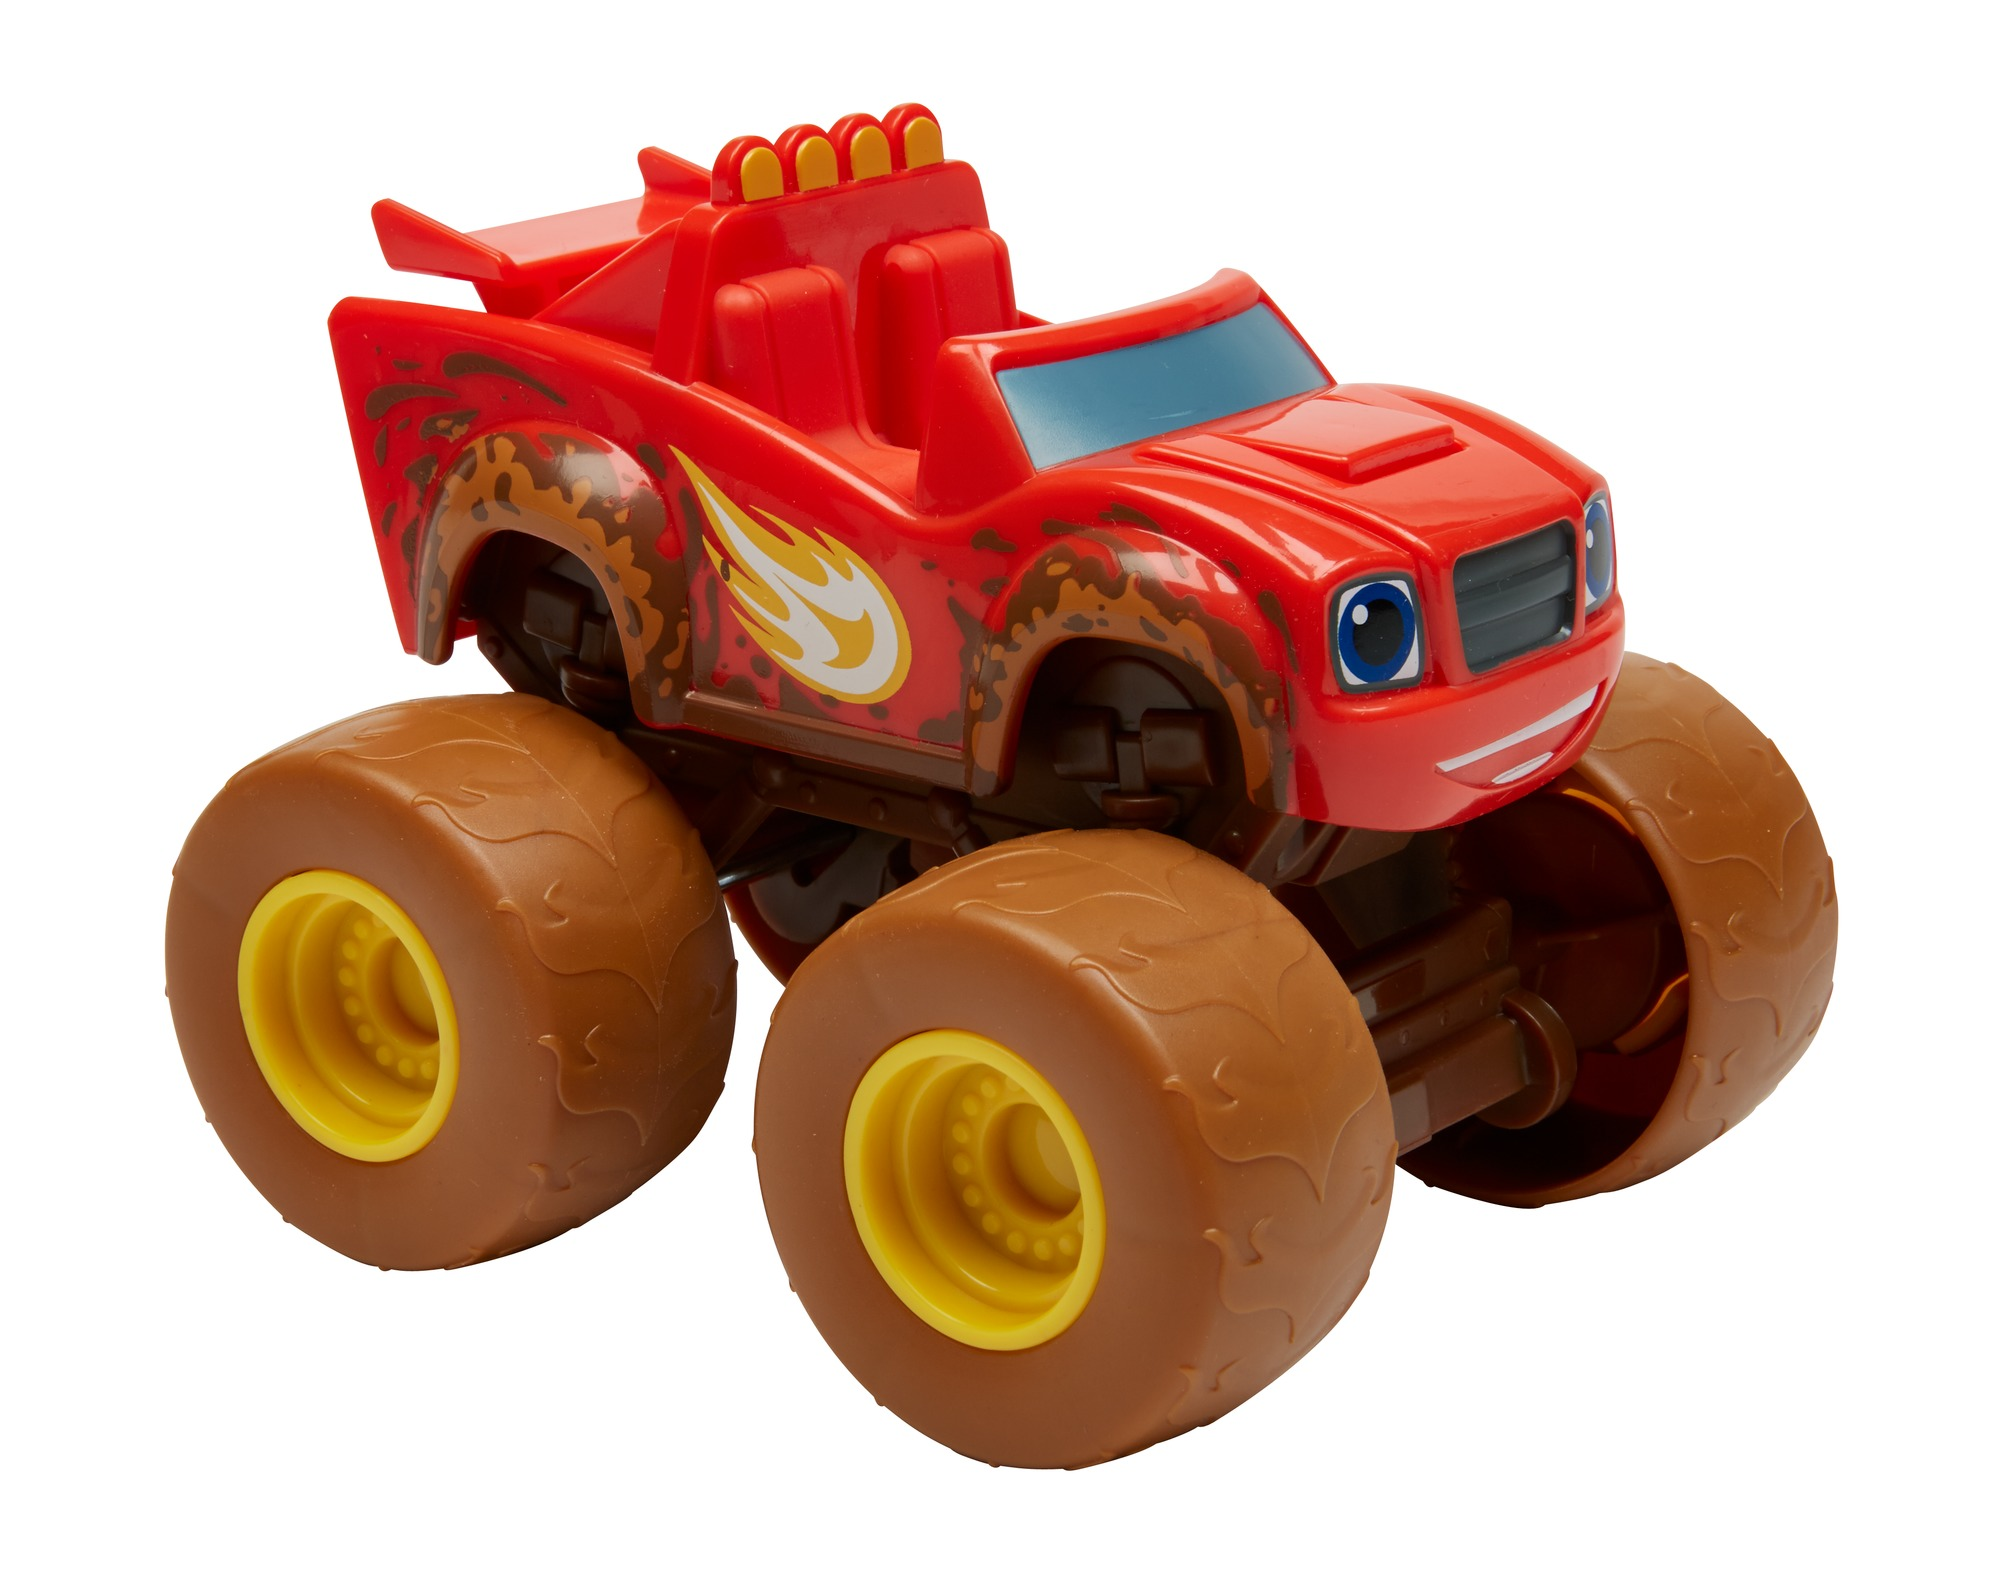 Fisher Price Nickelodeon Blaze And The Monster Machines Talking Mud Fest Blaze by FISHER-PRICE BRANDS A DIVISION OF MATTEL DIRECT IMPORT INC